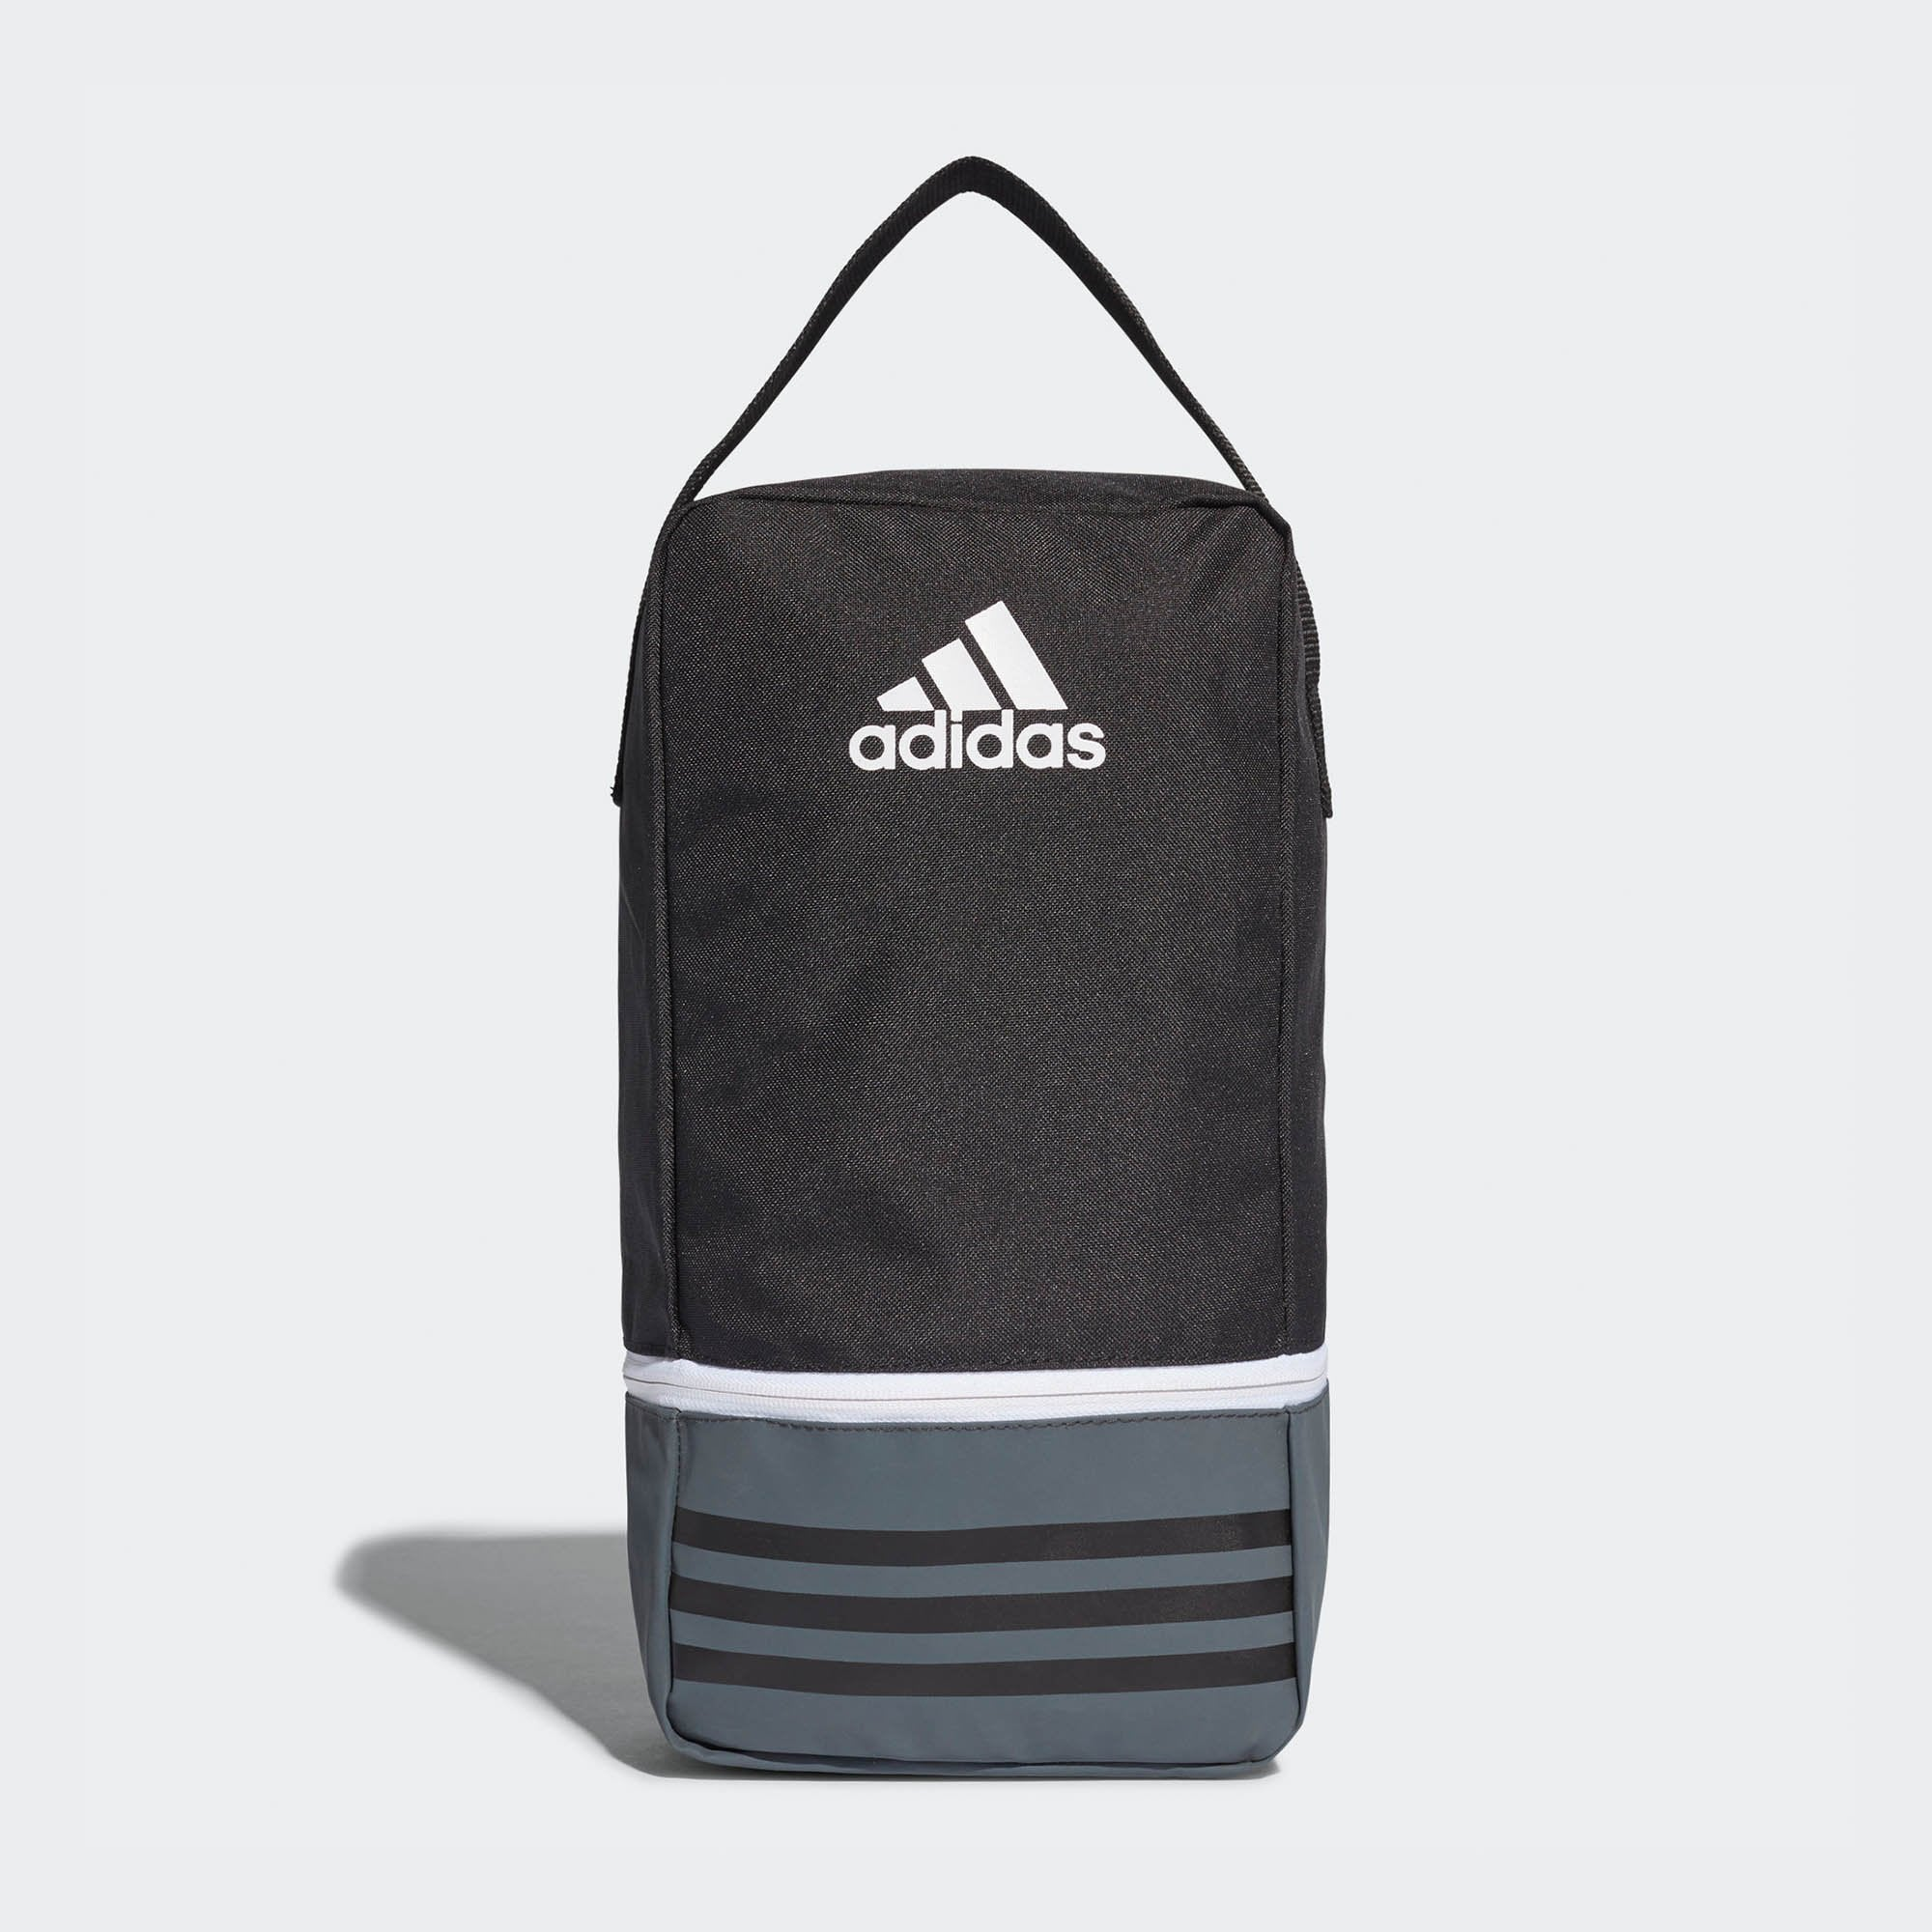 65b869743d Buy adidas Tiro Shoe Bag